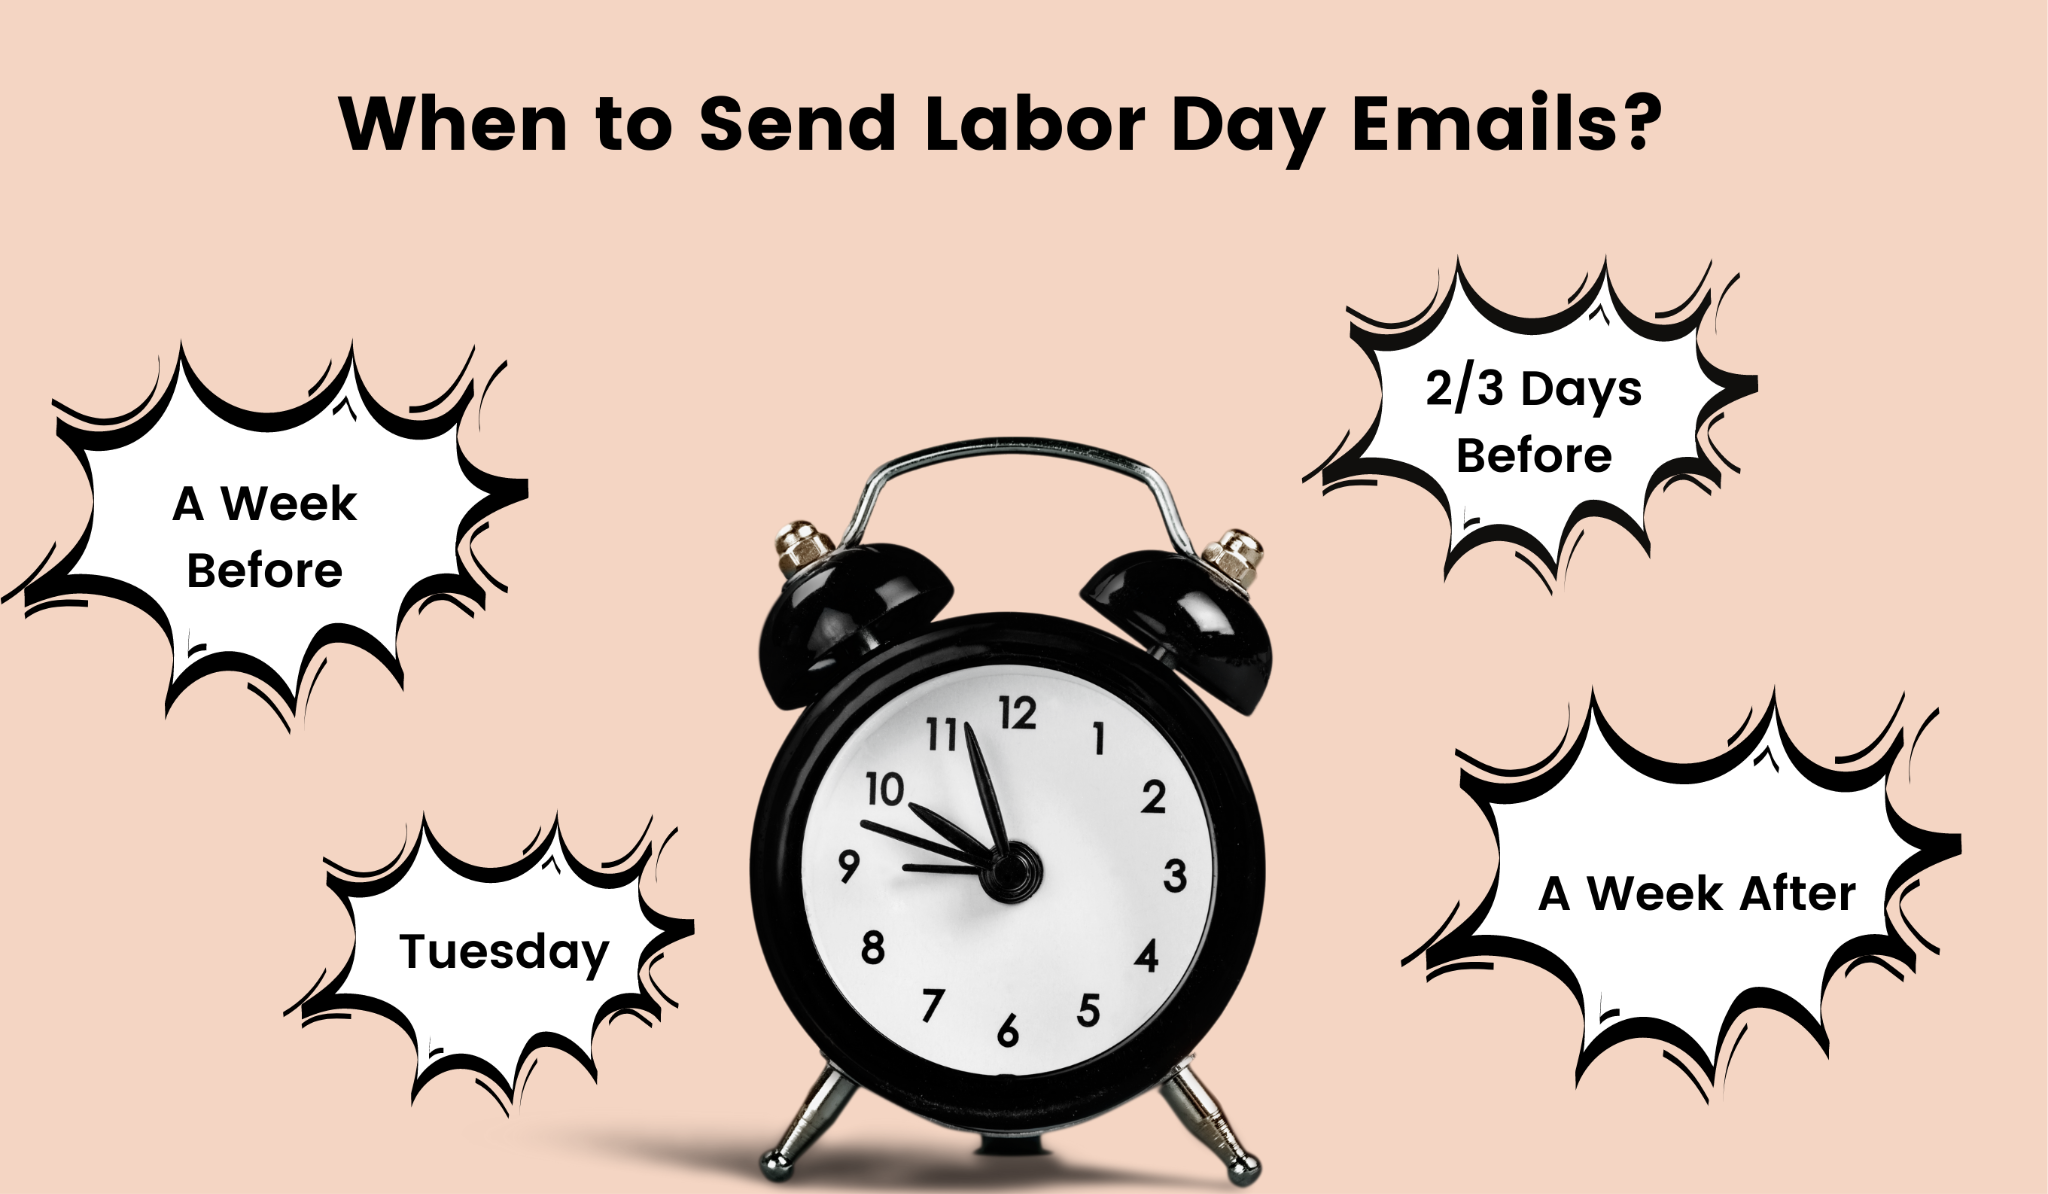 Optimal time for sending Labor Day emails